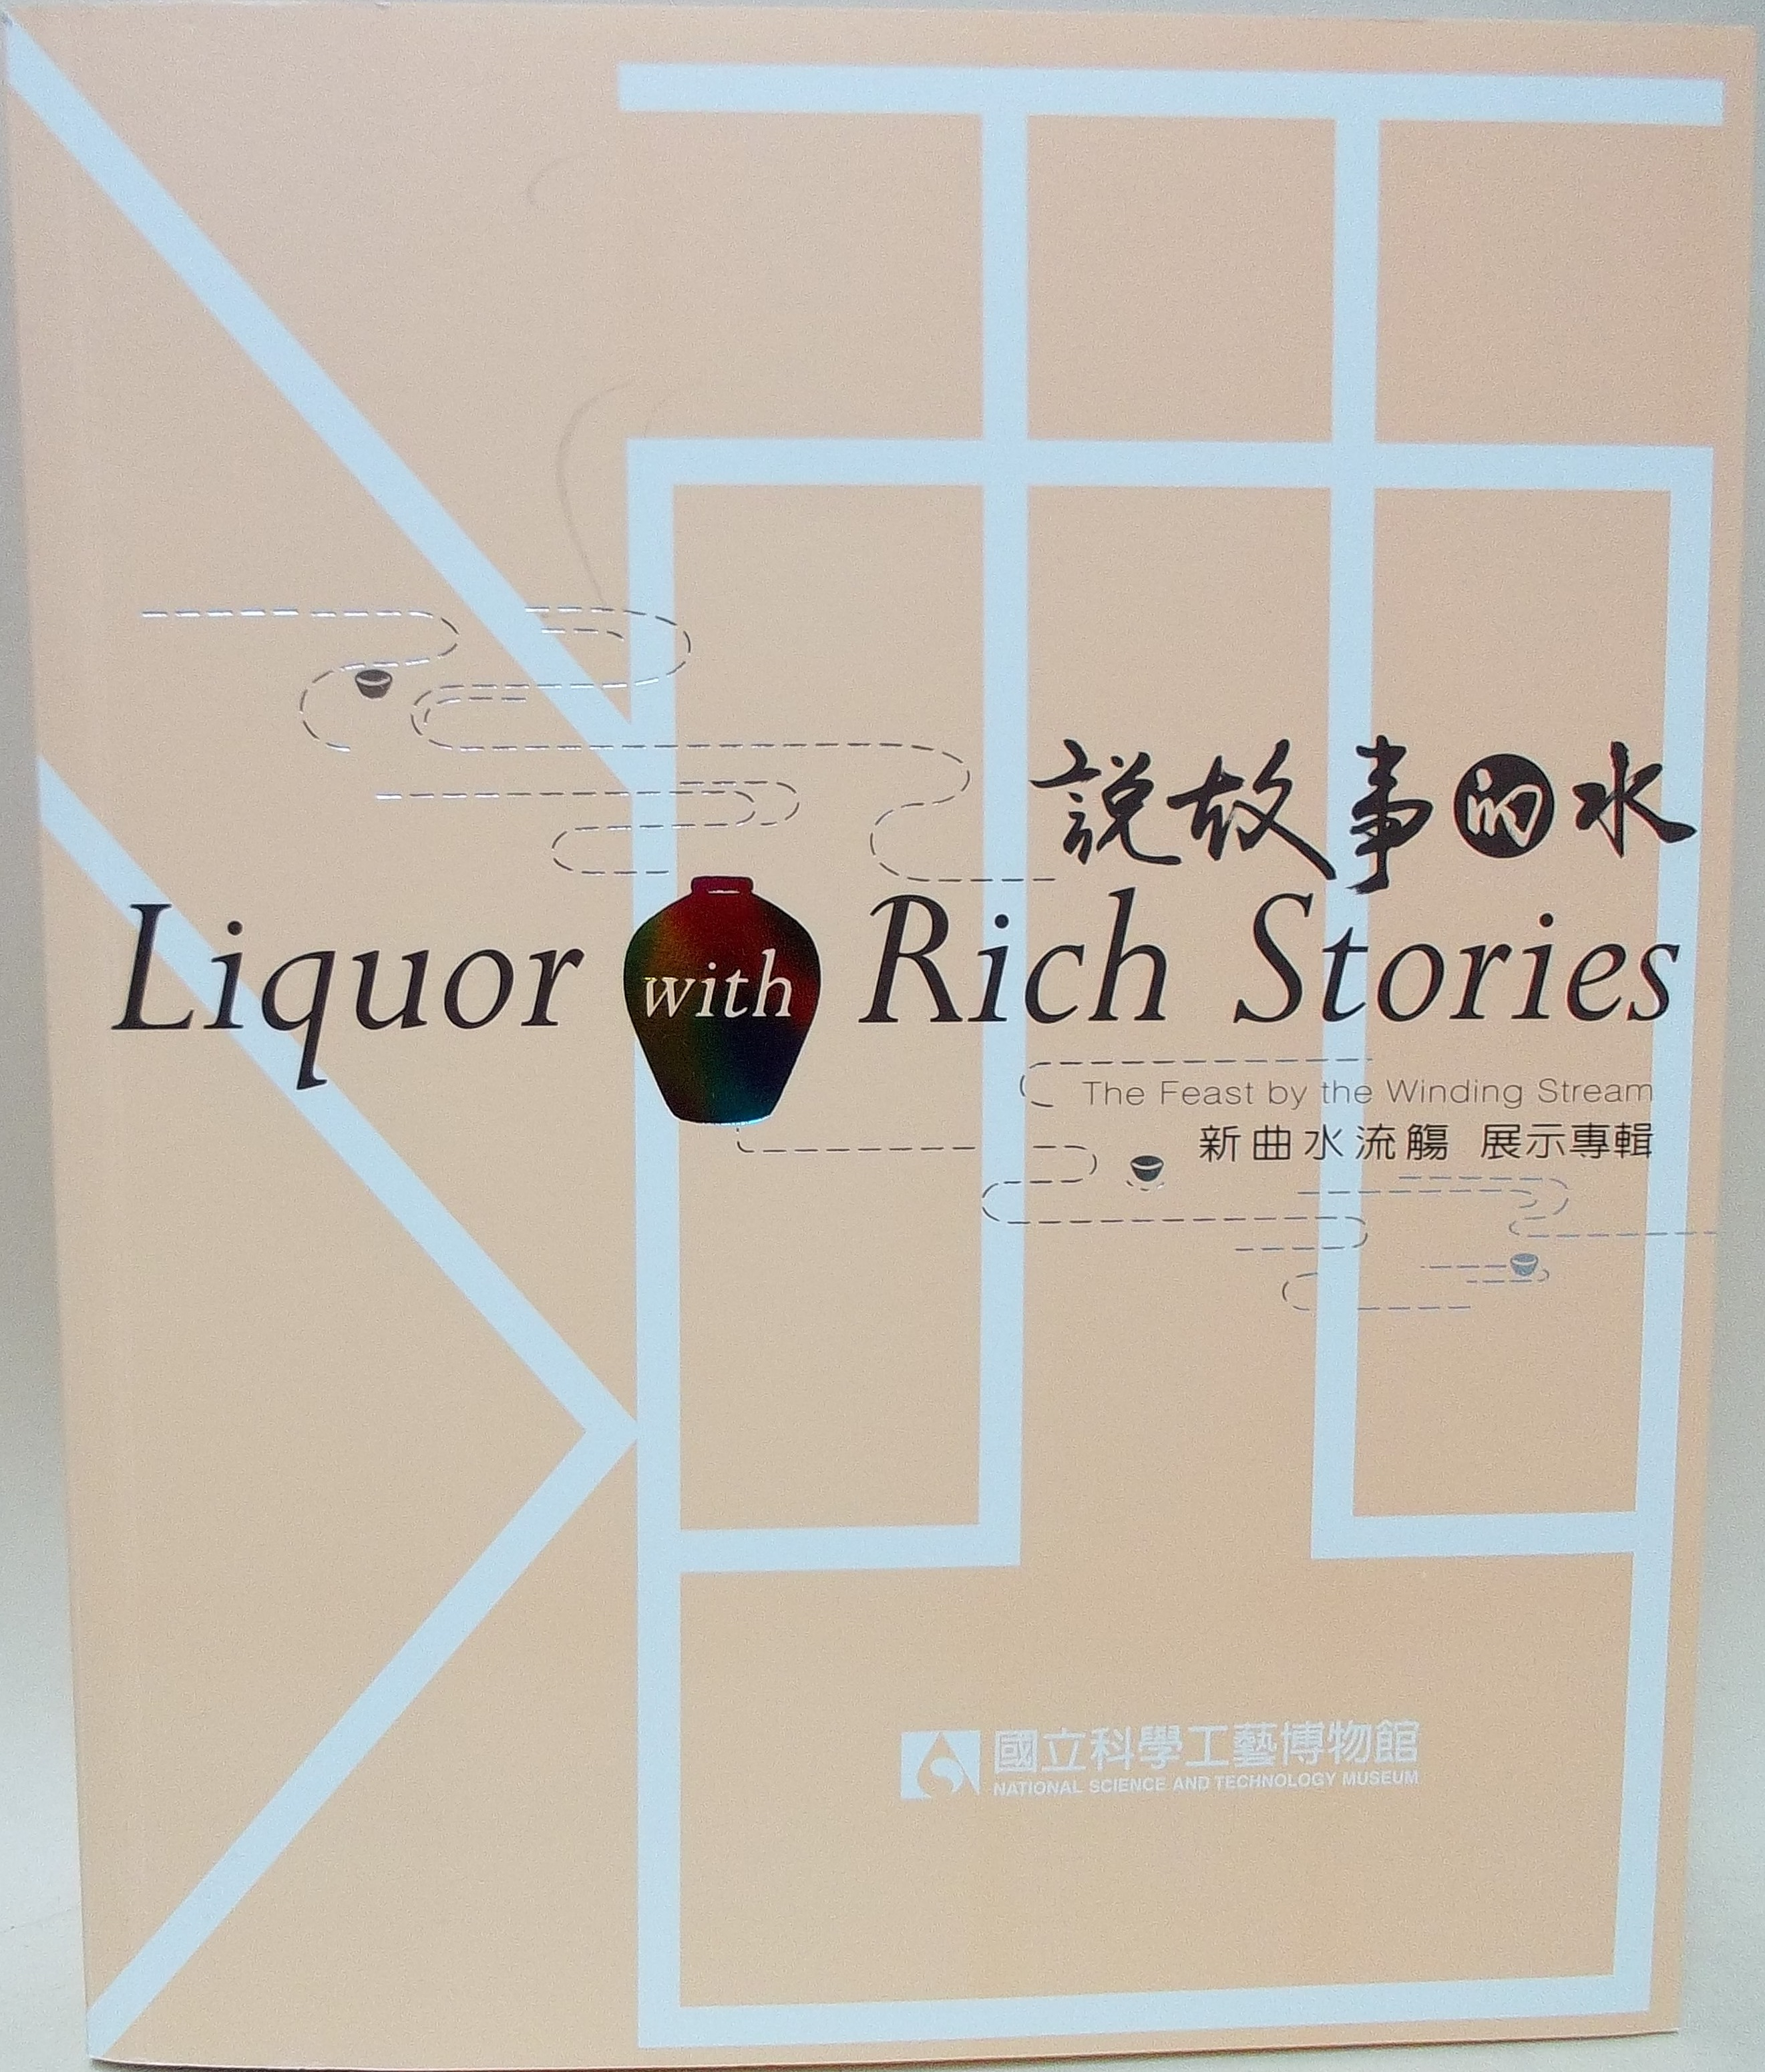 Liquor with Rich Stories-The Feast by the Winding Stream